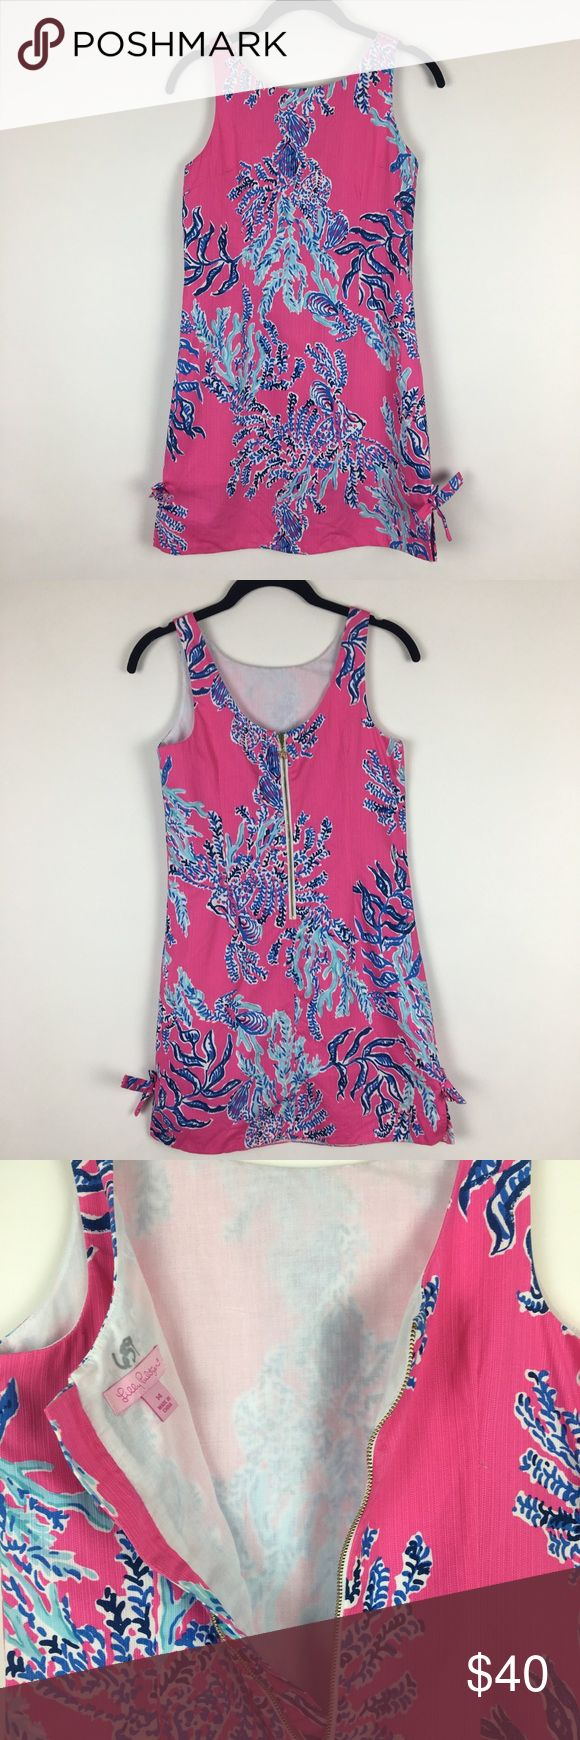 Lilly Pulitzer Girl's Little Delia Dress Size 14 Lilly Pulitzer Girl's Little Delia Dress Size 14 Pink Samba Coral Print  Adorable Little Delia dress by Lilly Pulitzer. Girls size 14. 100% cotton. Chest is 31 inches and length is 31 inches. This is a little girls dress not women's. Lilly Pulitzer Dresses Casual